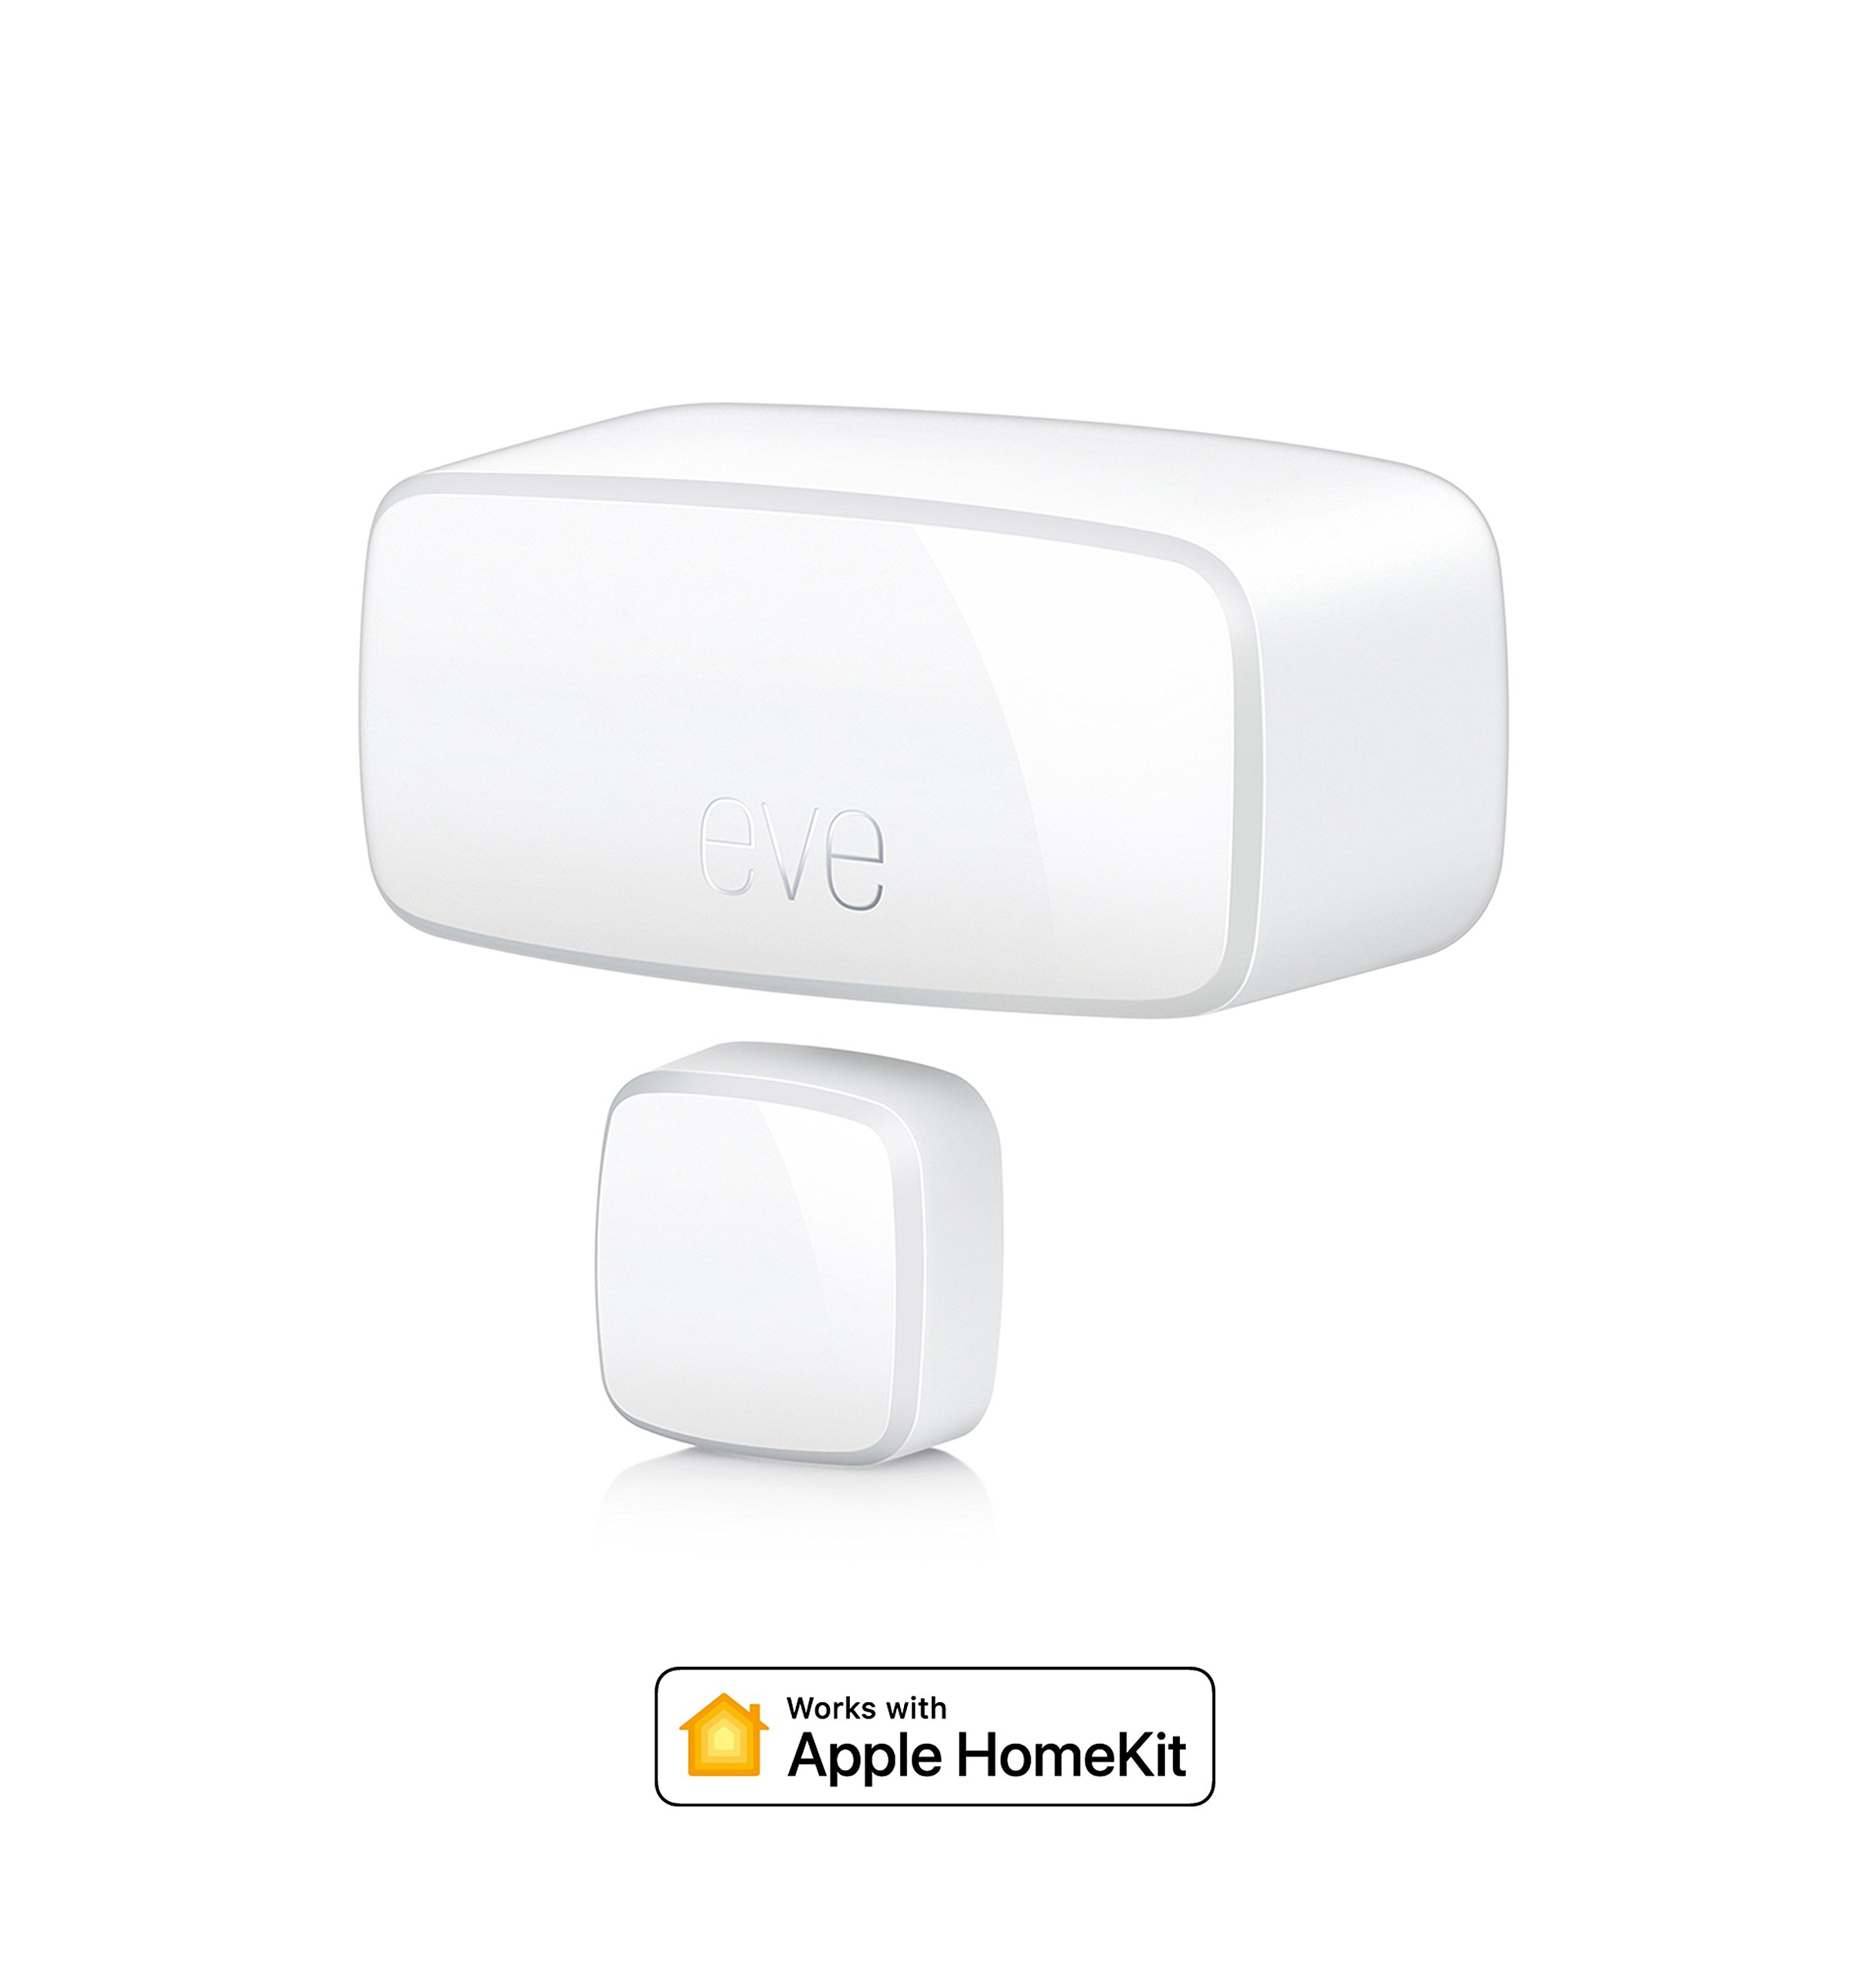 Eve Door & Window - Wireless contact sensor with Apple HomeKit technology, Bluetooth Low Energy by Elgato (Image #1)